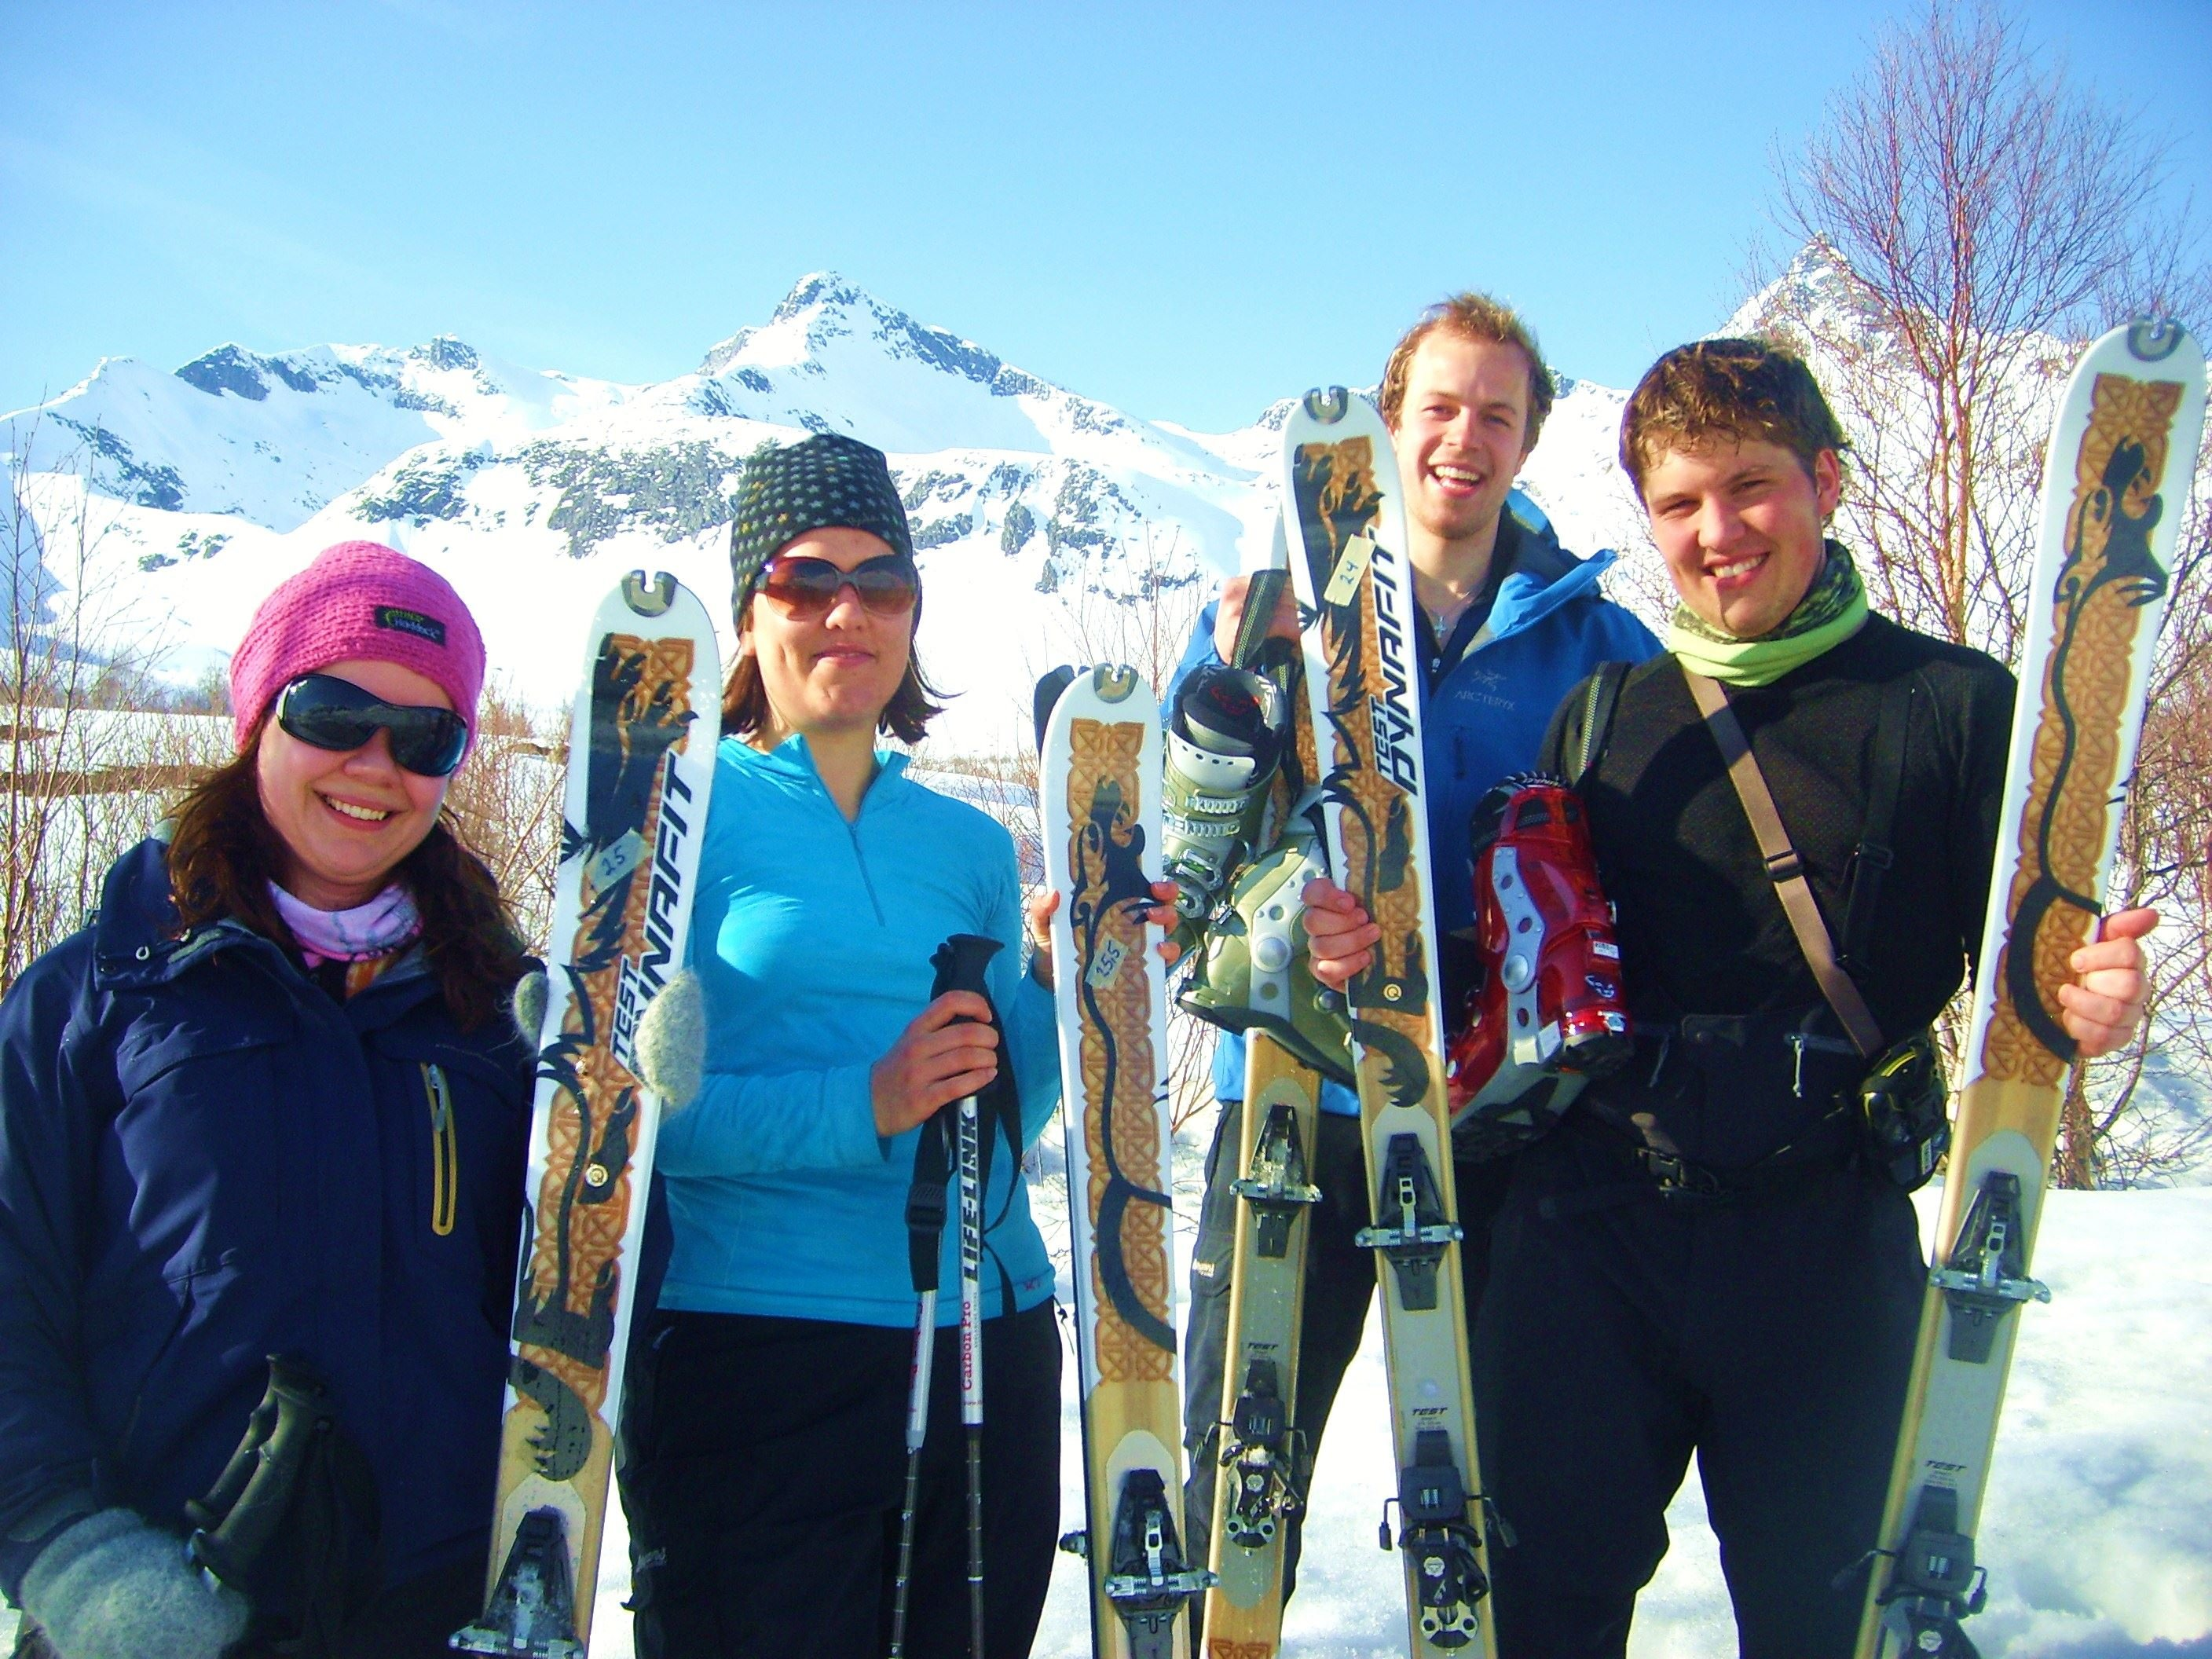 Introduction to Ski Touring - guided trip for beginners